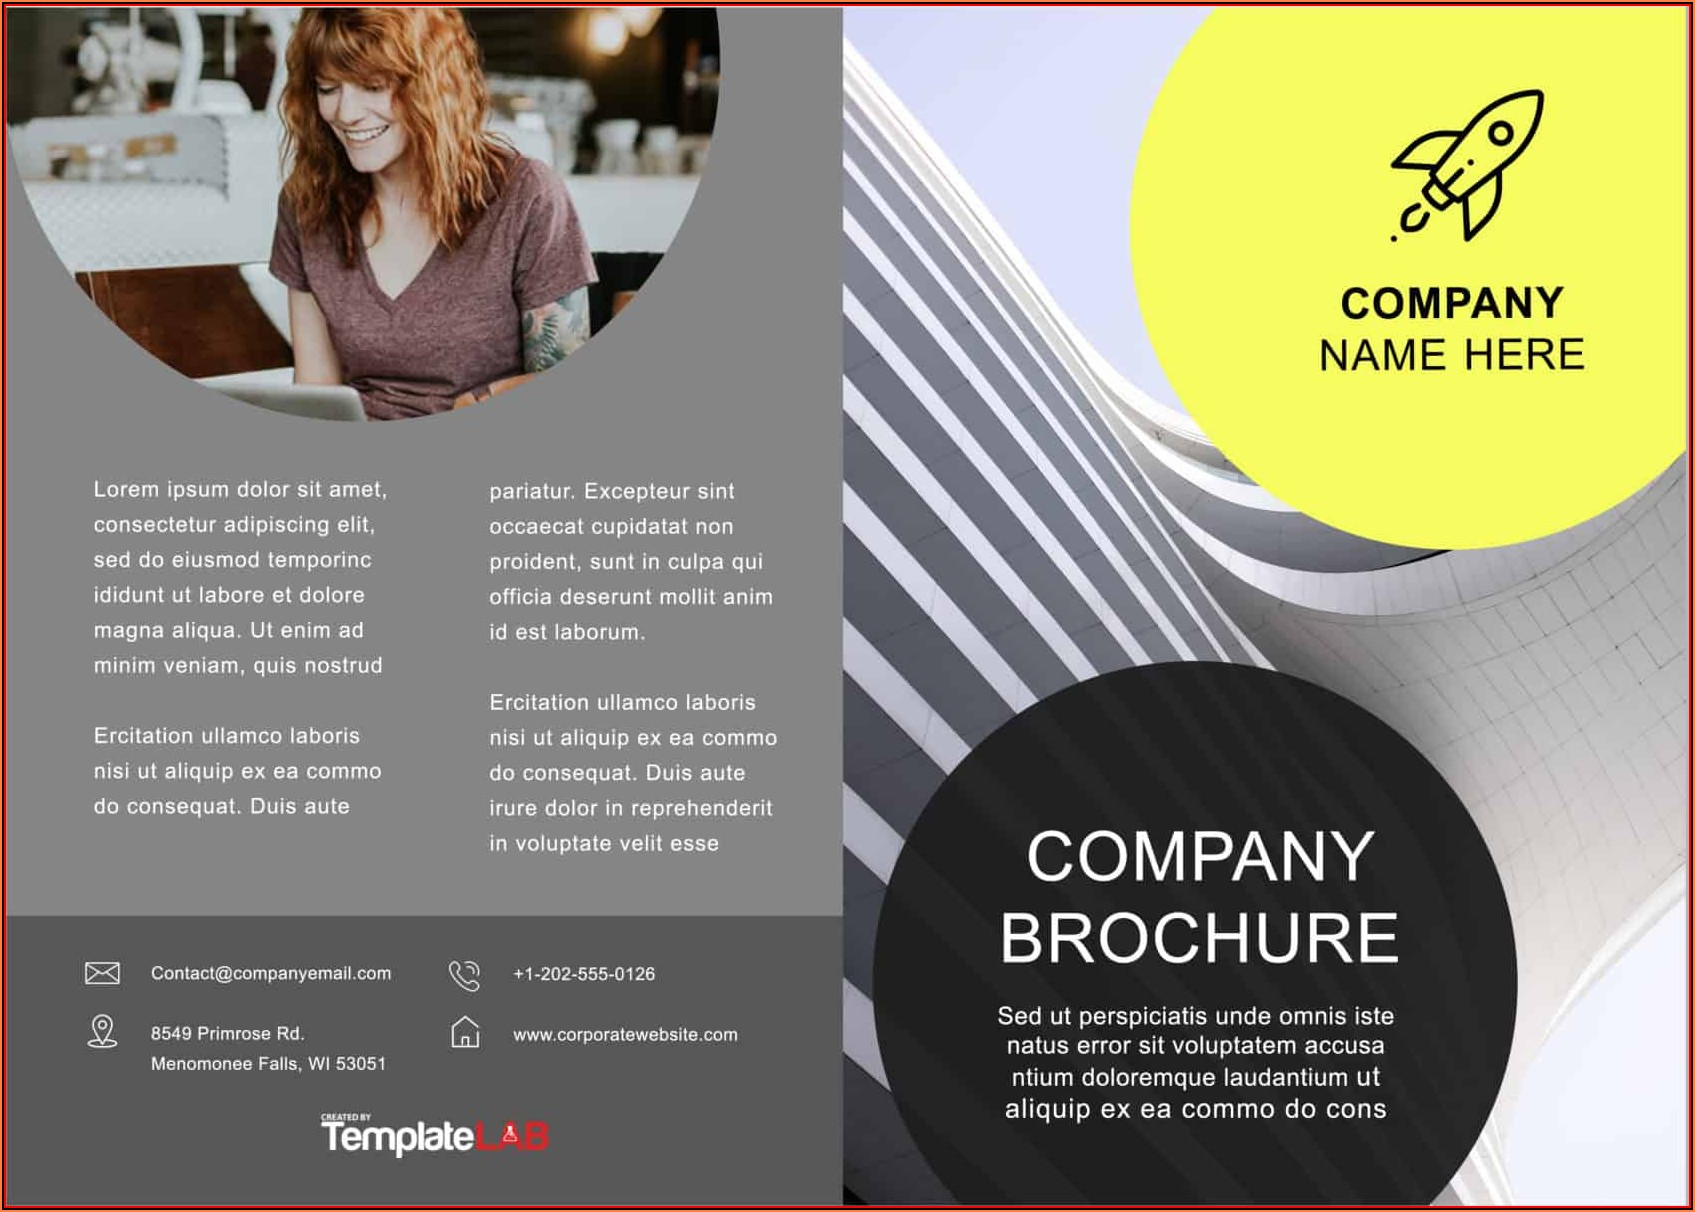 11x17 Brochure Template Word Free